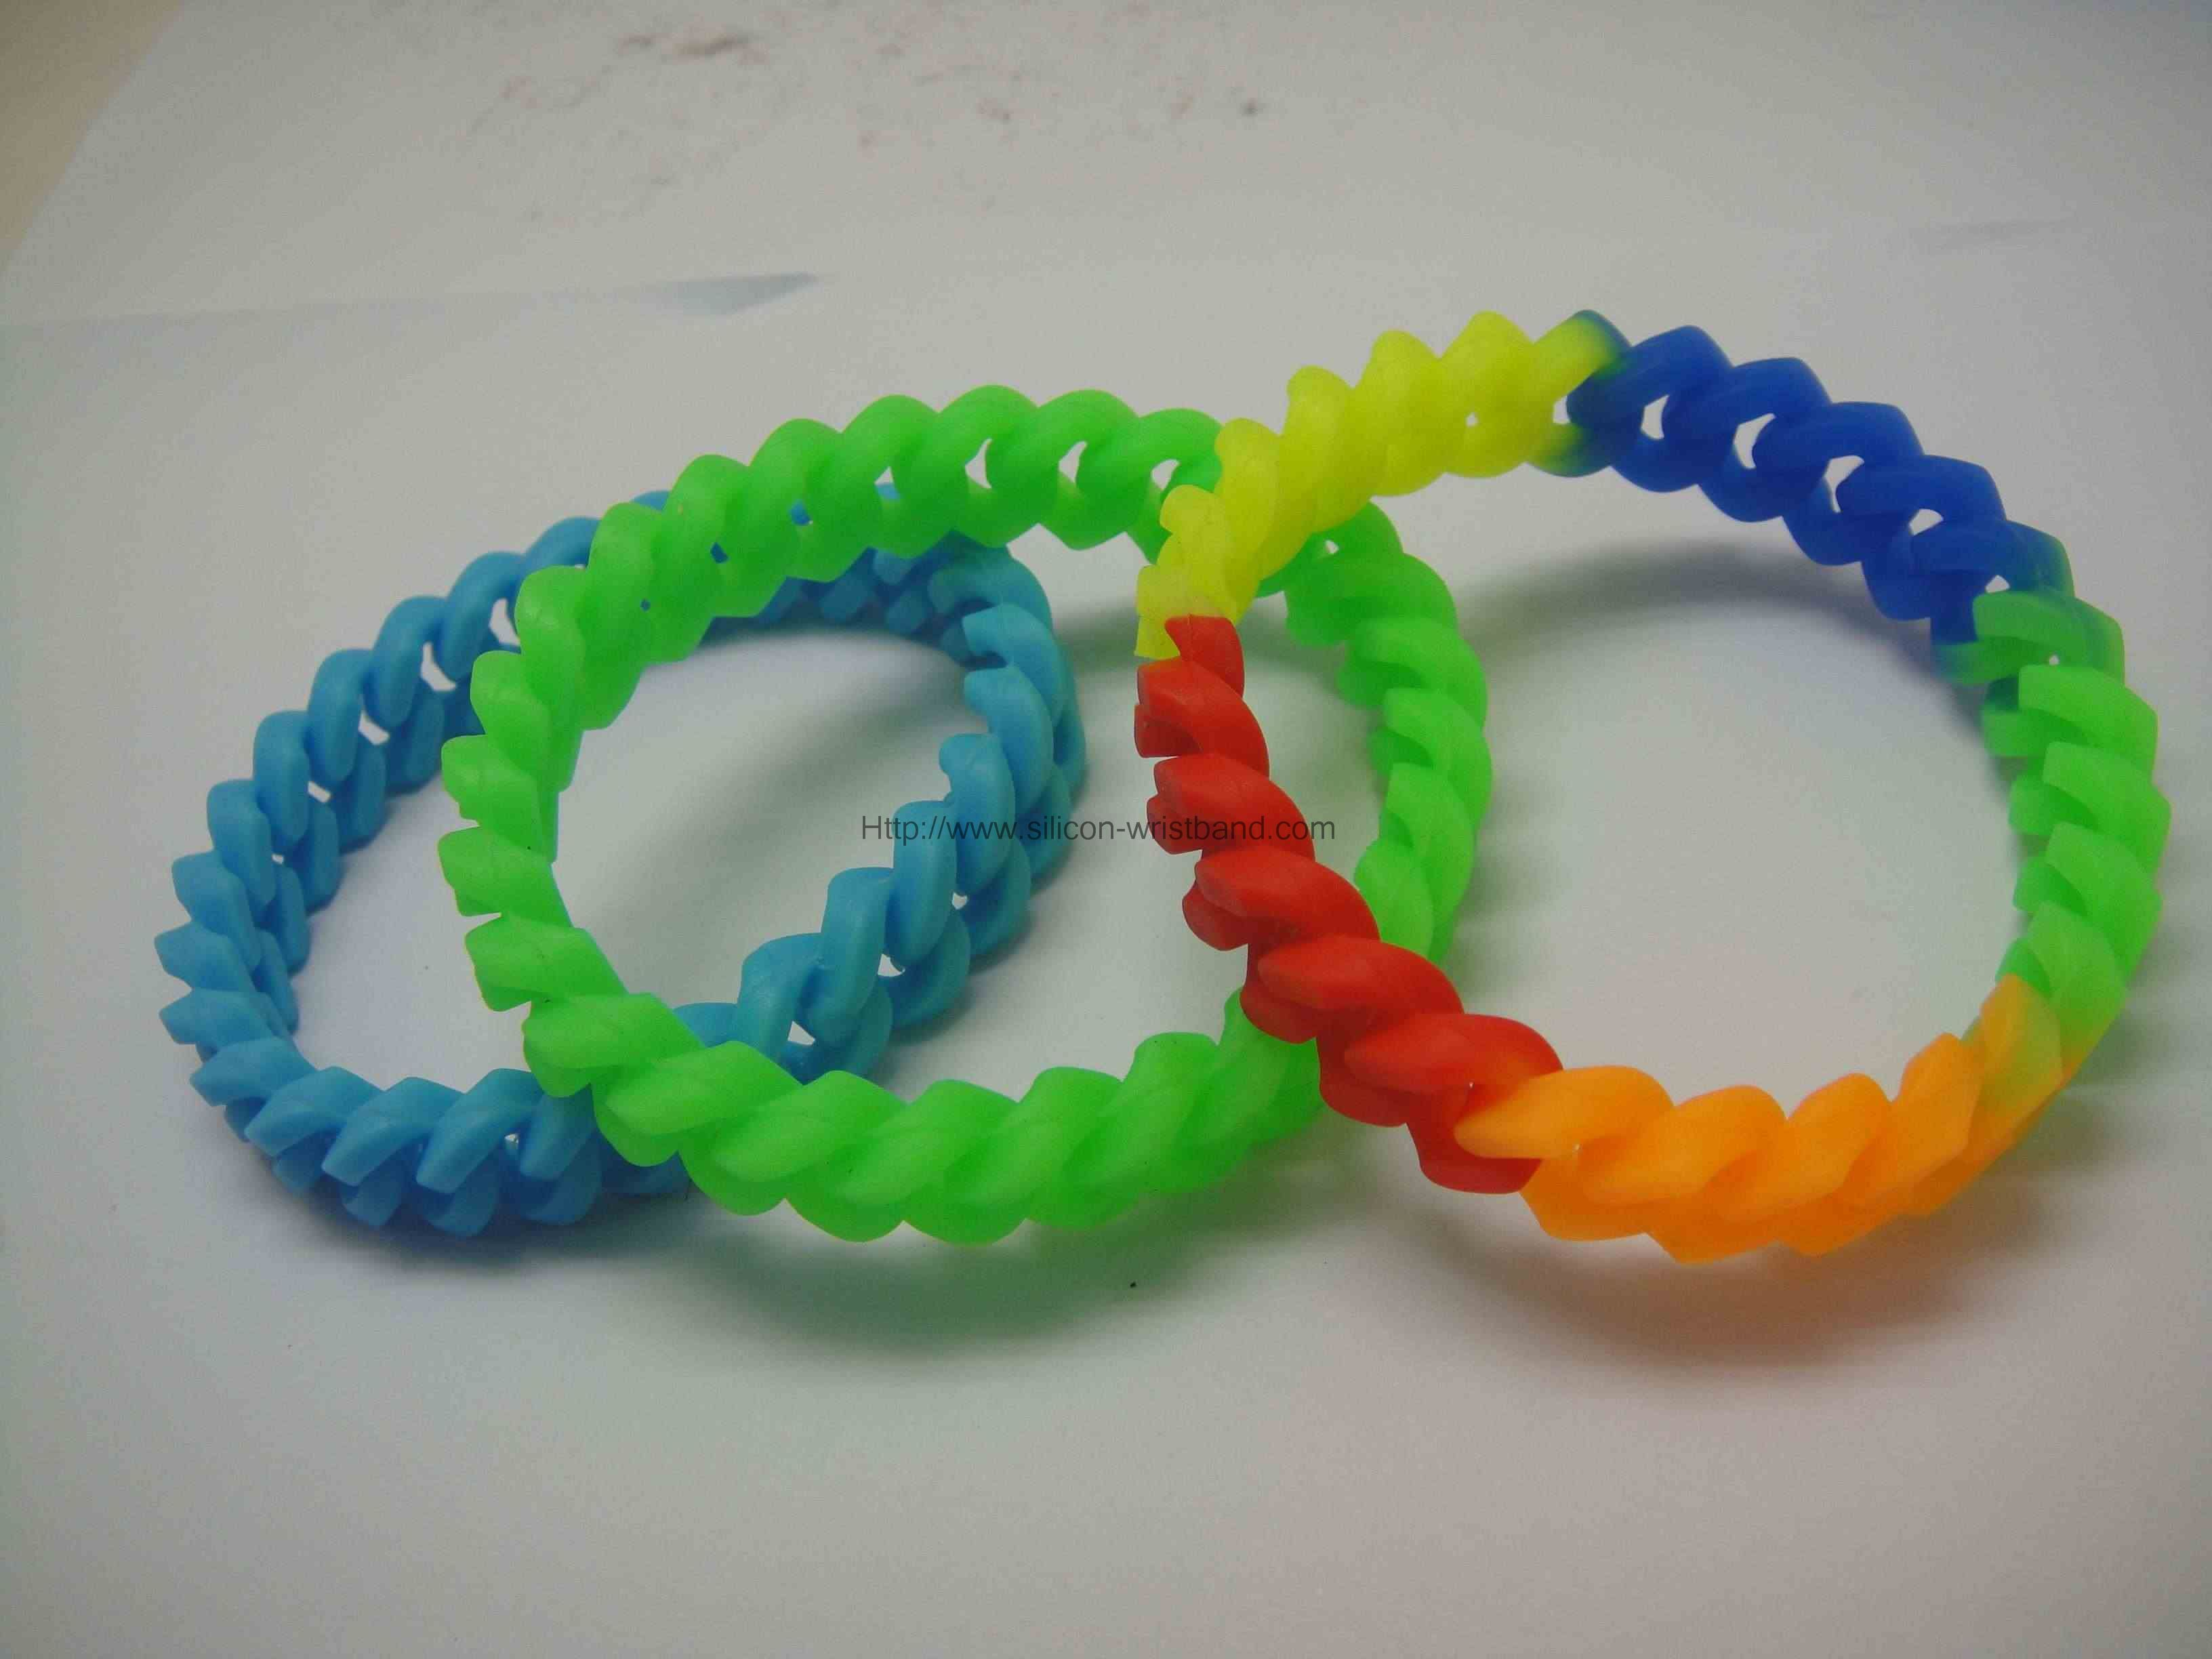 silicone wristbands for fundraising